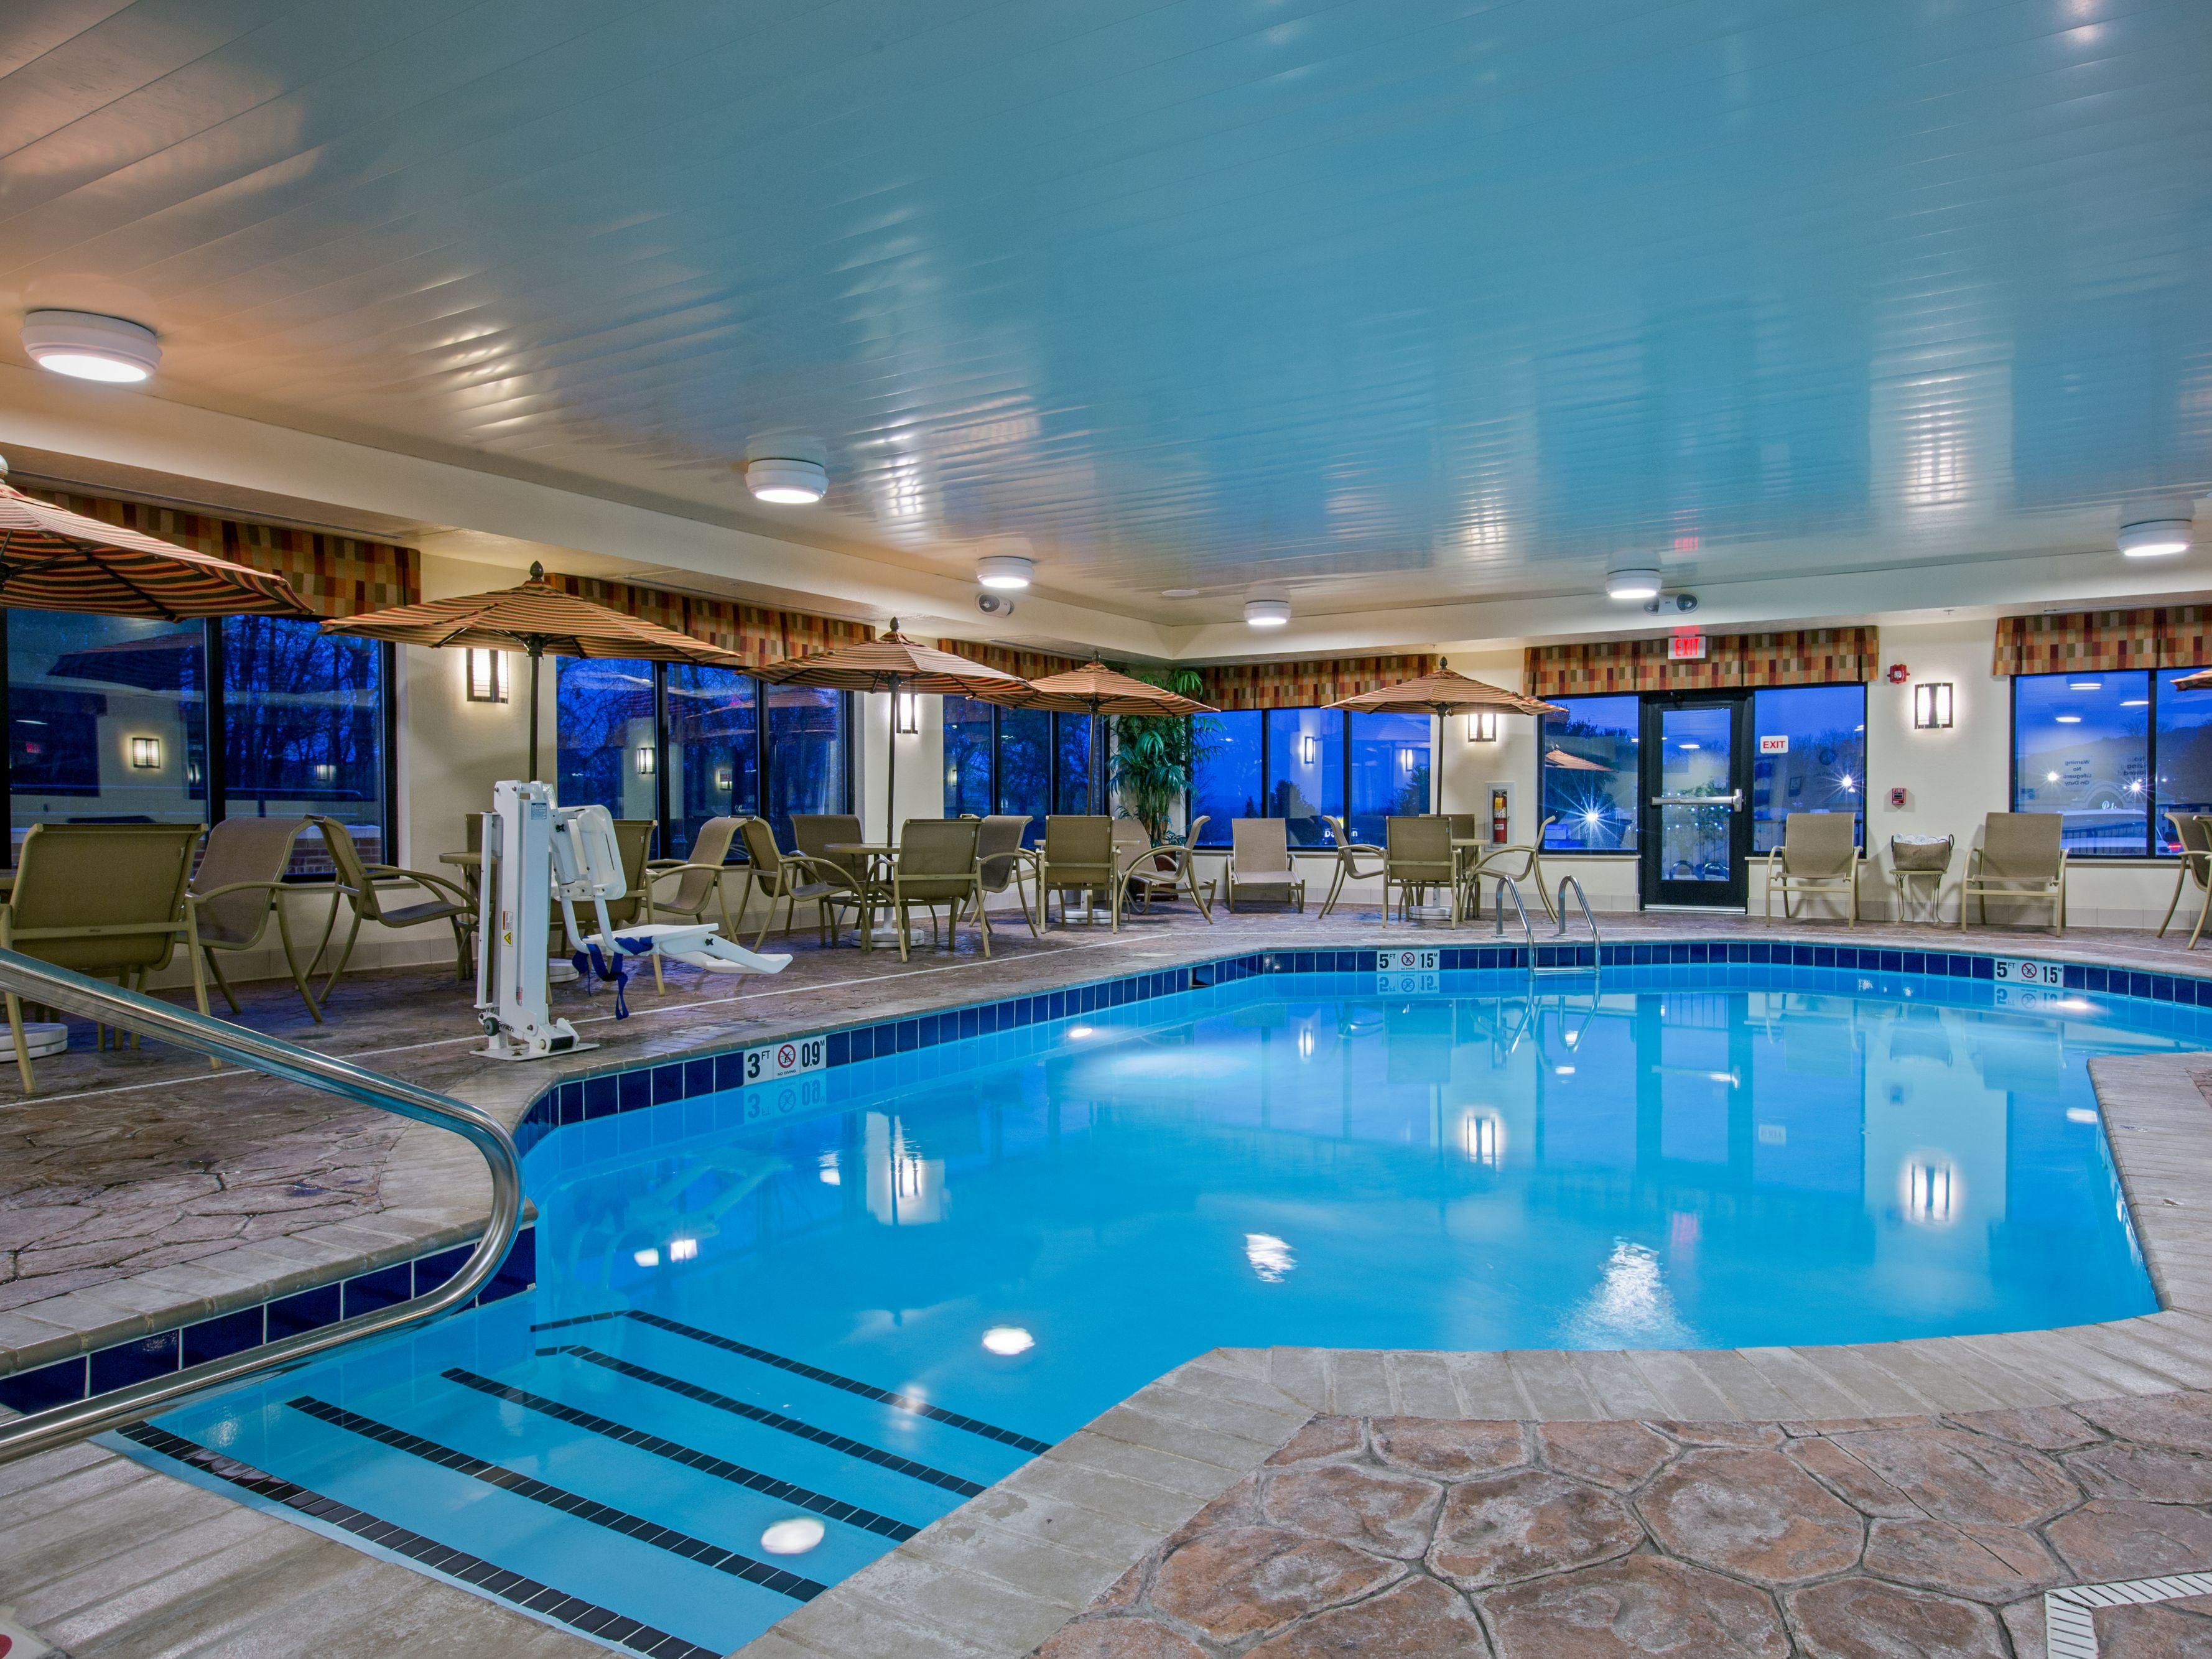 Our indoor Swimming Pool is equipped with ADA/Handicapped lift